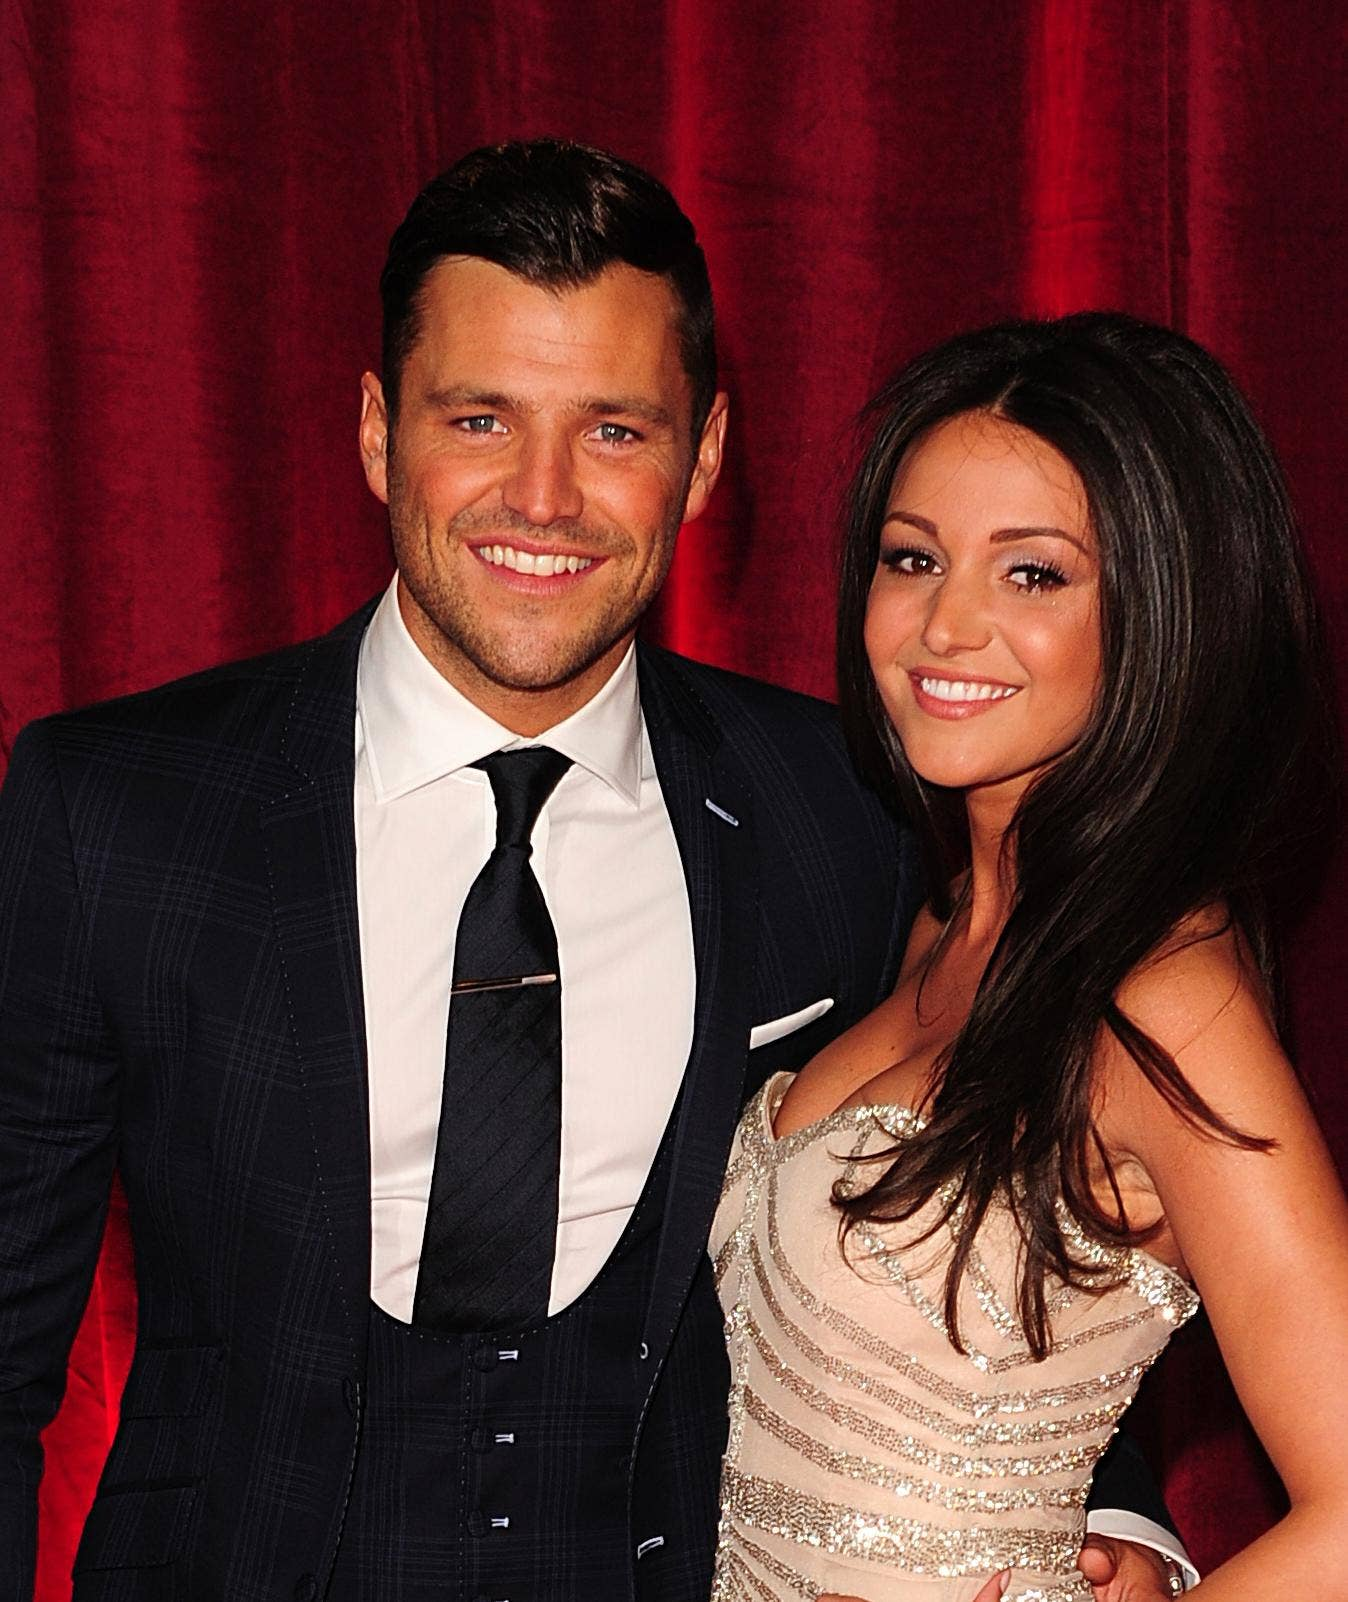 Mark Wright and Michelle Keegan: The Coronation Street star is quitting Manchester when she leaves the soap next year and setting up home in Essex with boyfriend.